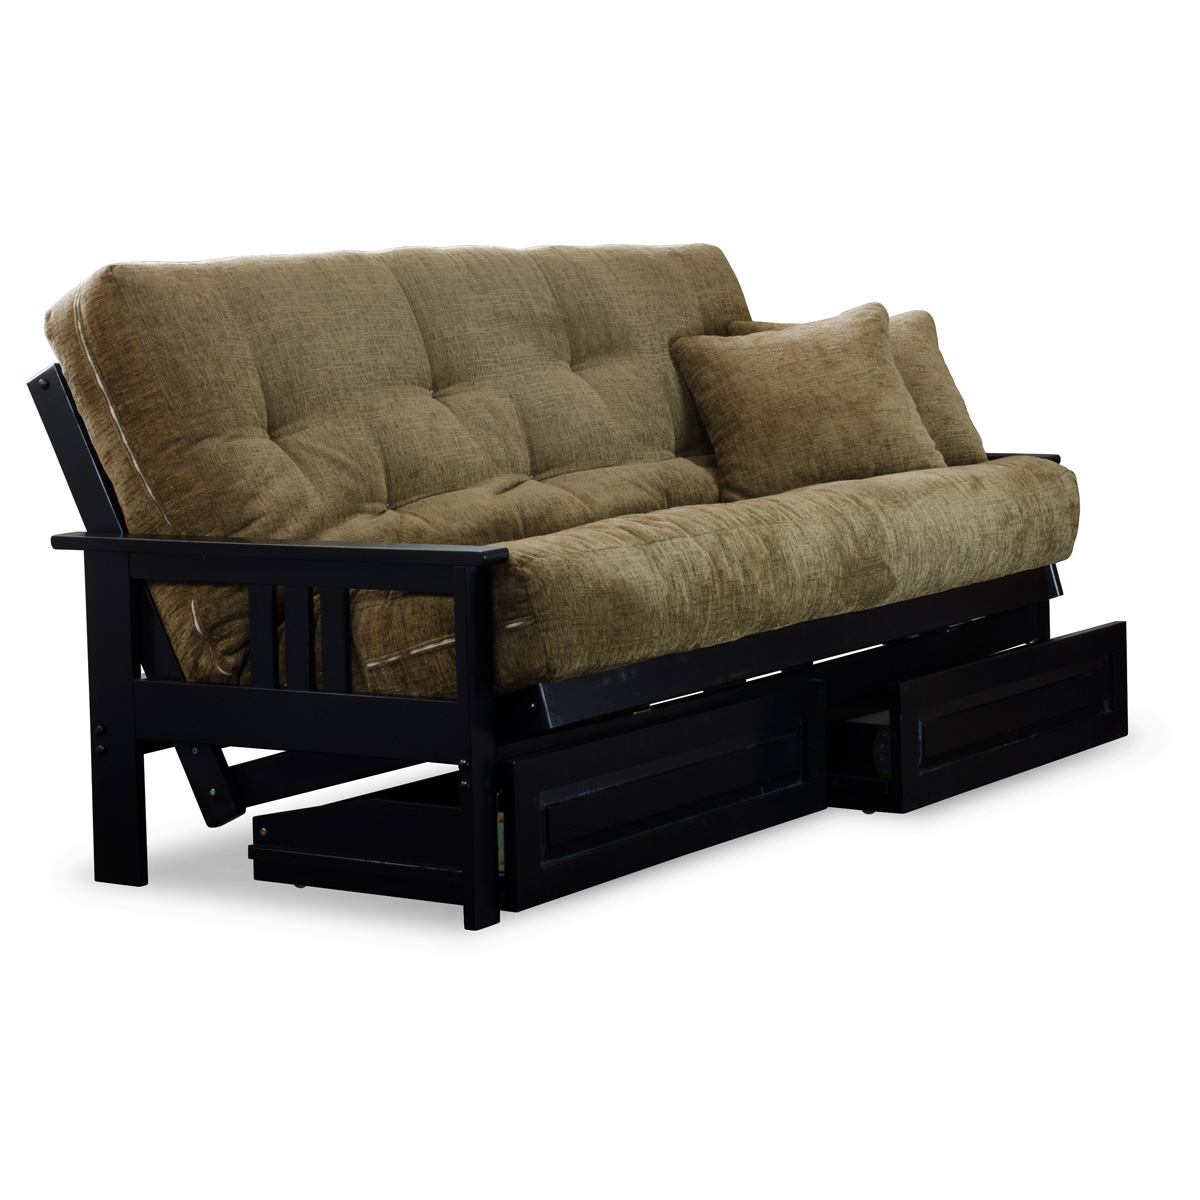 Orlando Full Size Wood Futon Set Black Designer